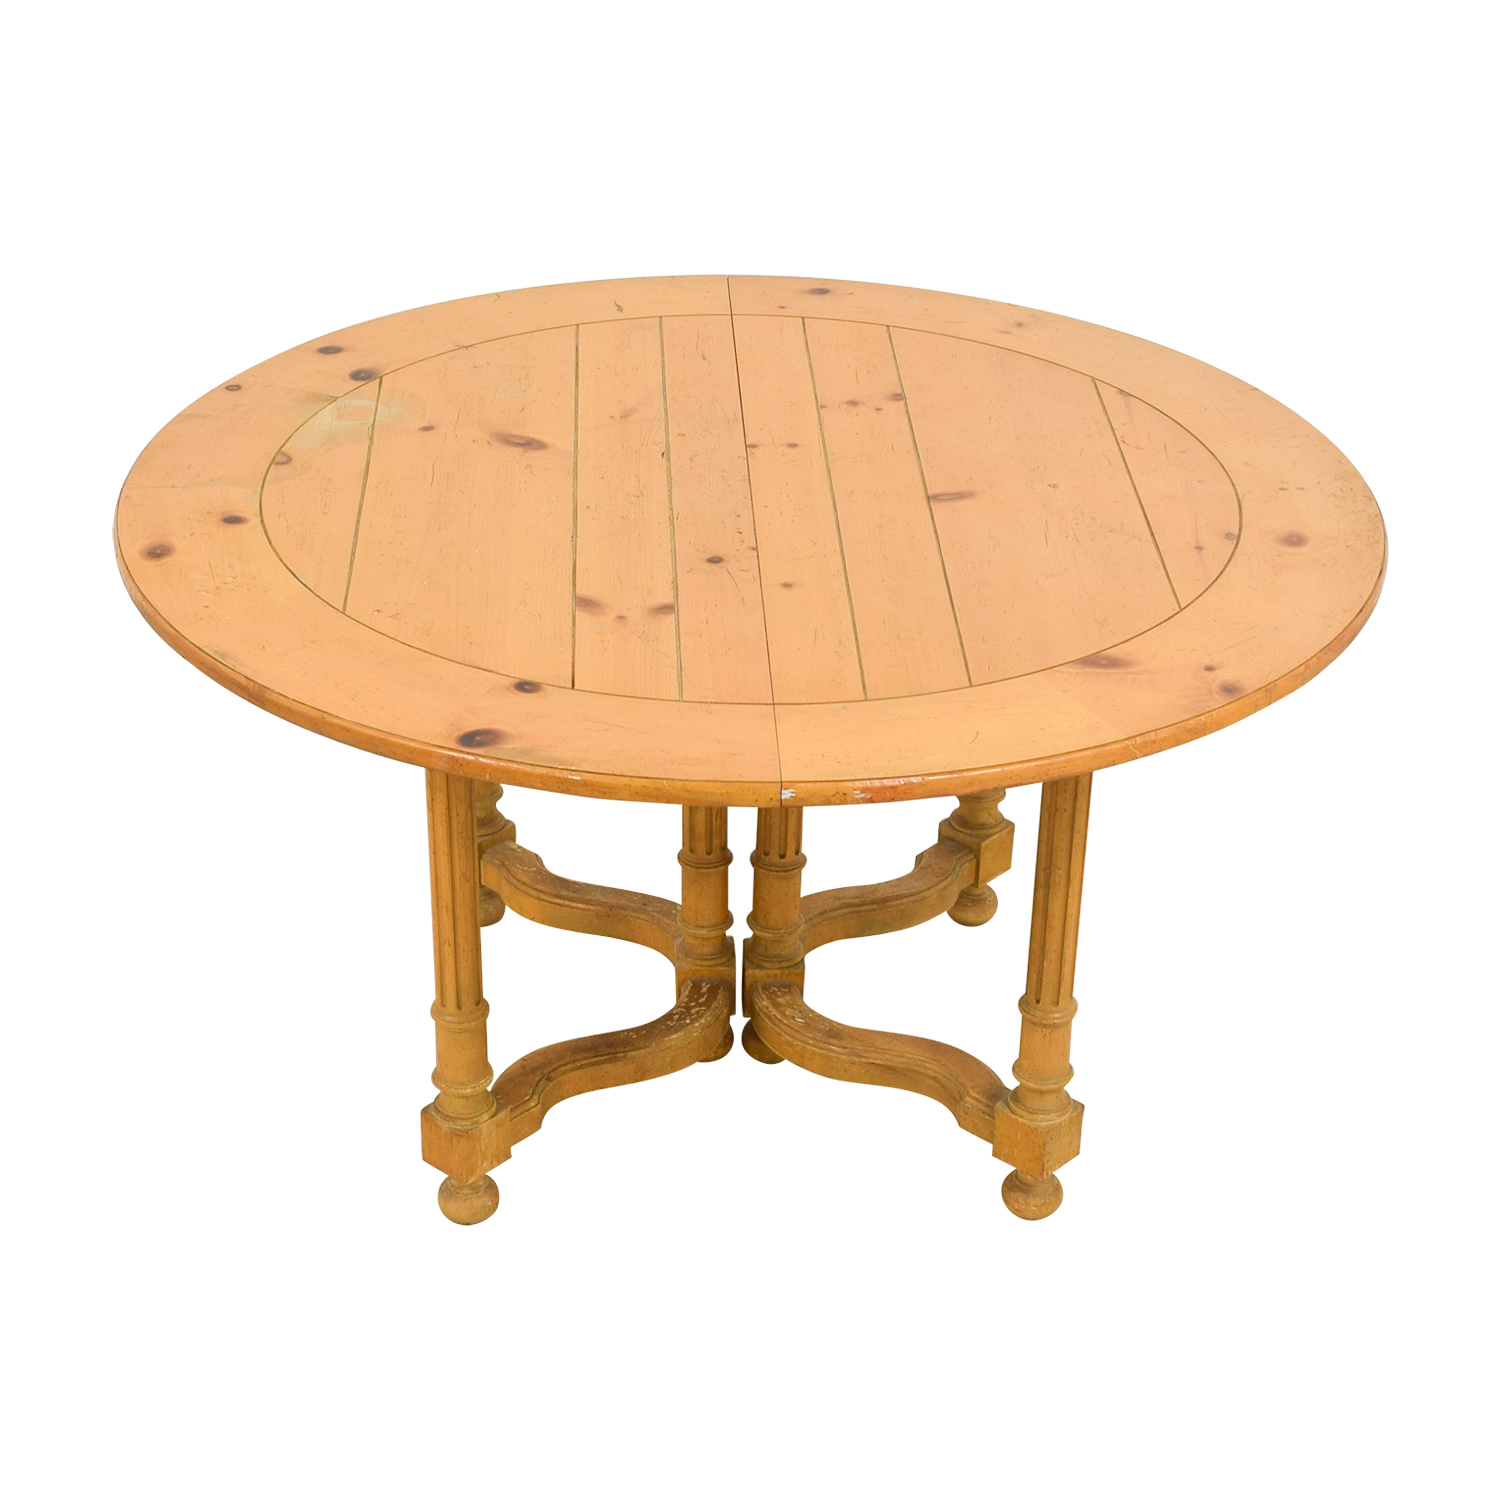 Milling Road Milling Road Natural Round Table with Leaf coupon